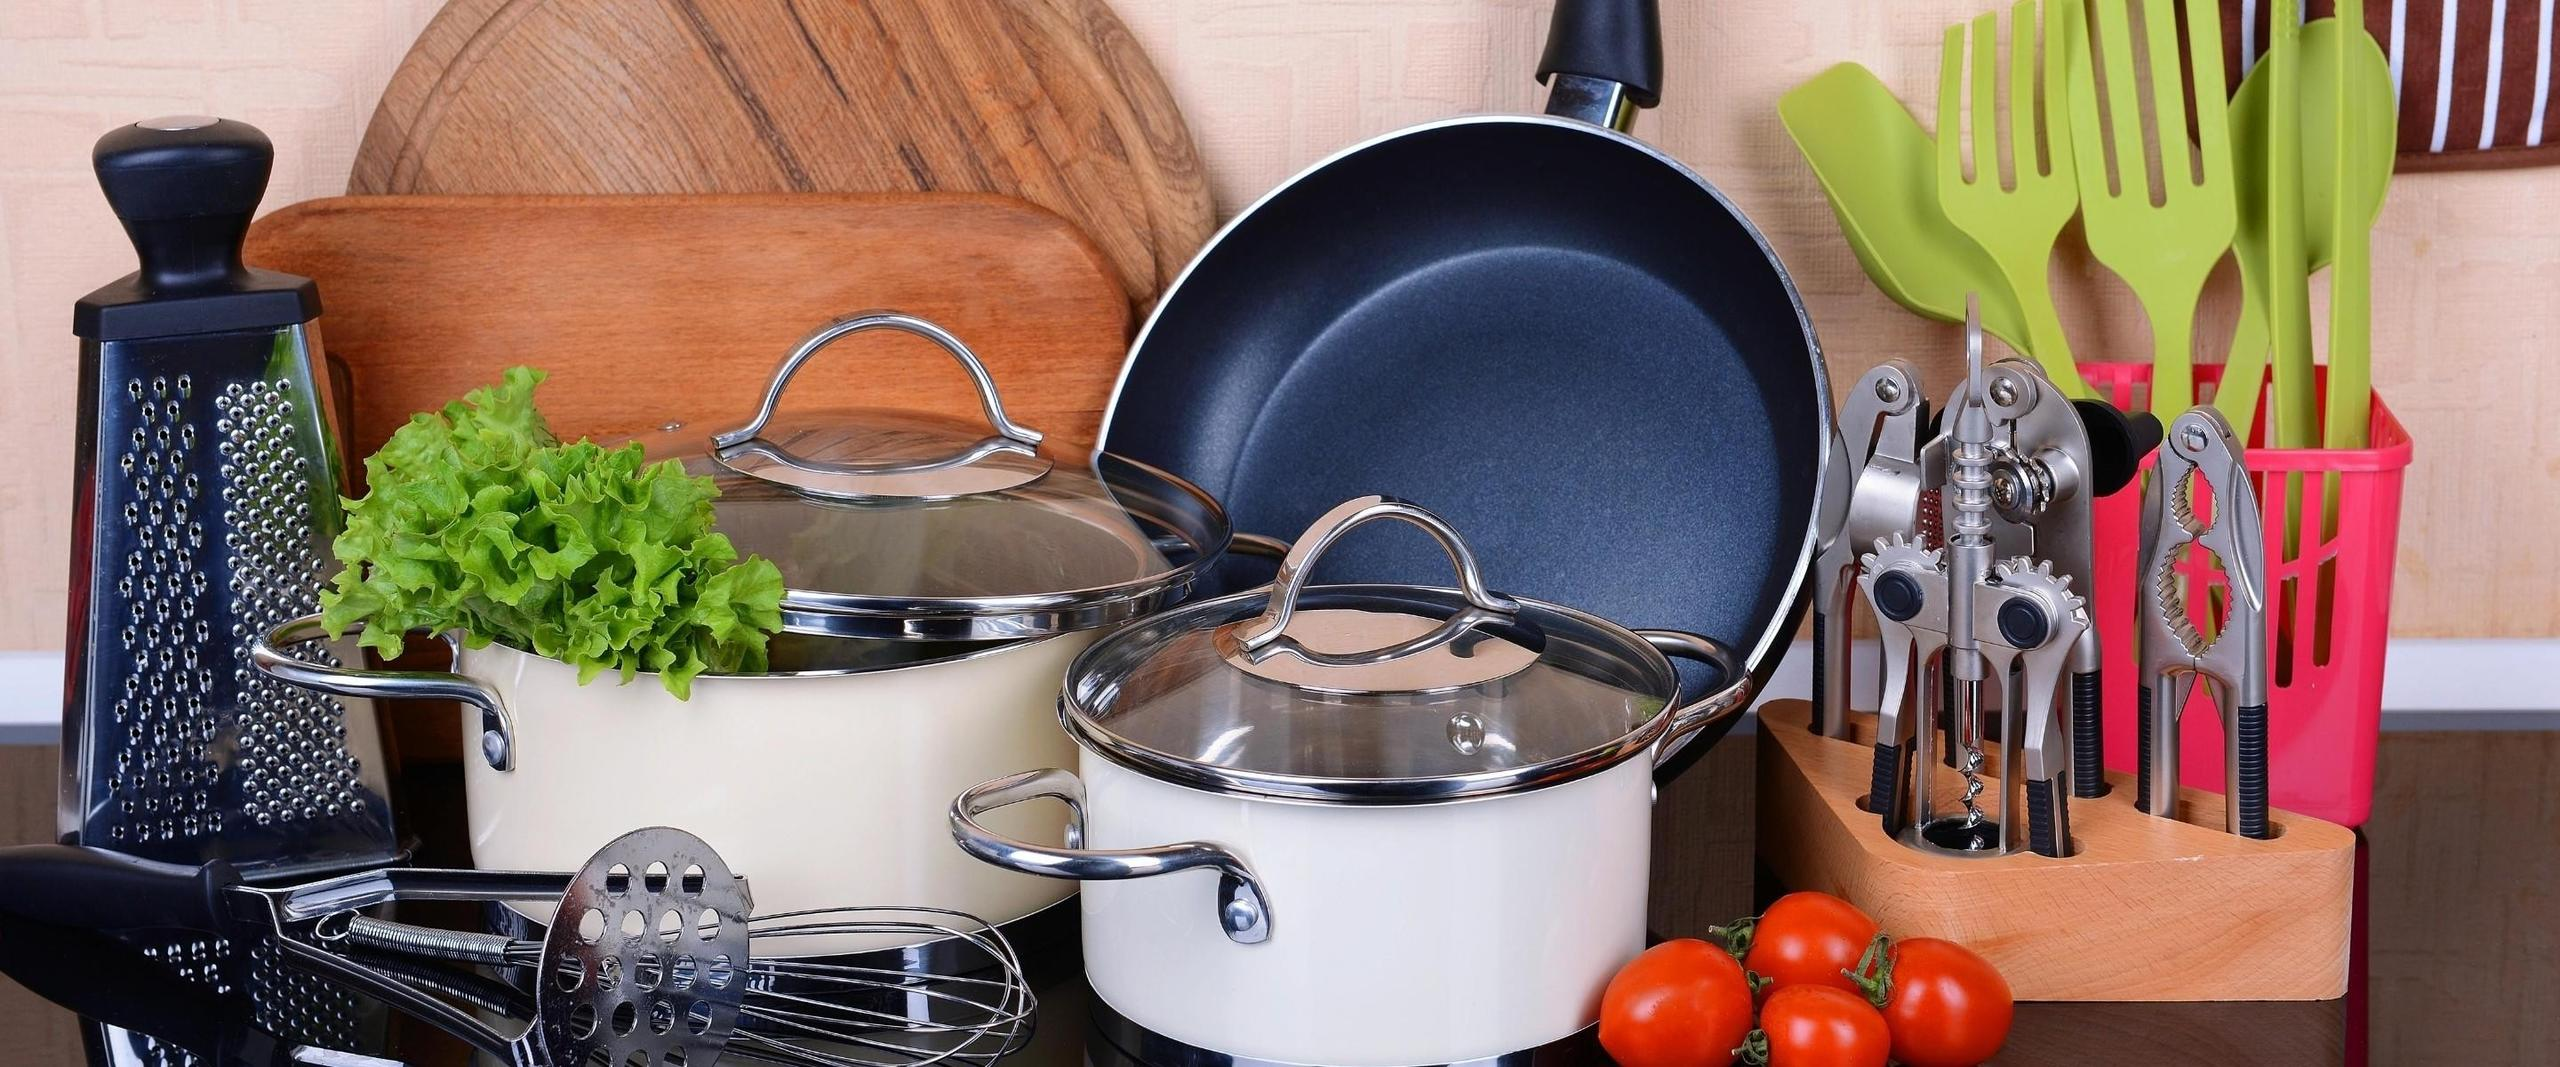 Vegan kitchen tools on a counter from Your Vegan Family